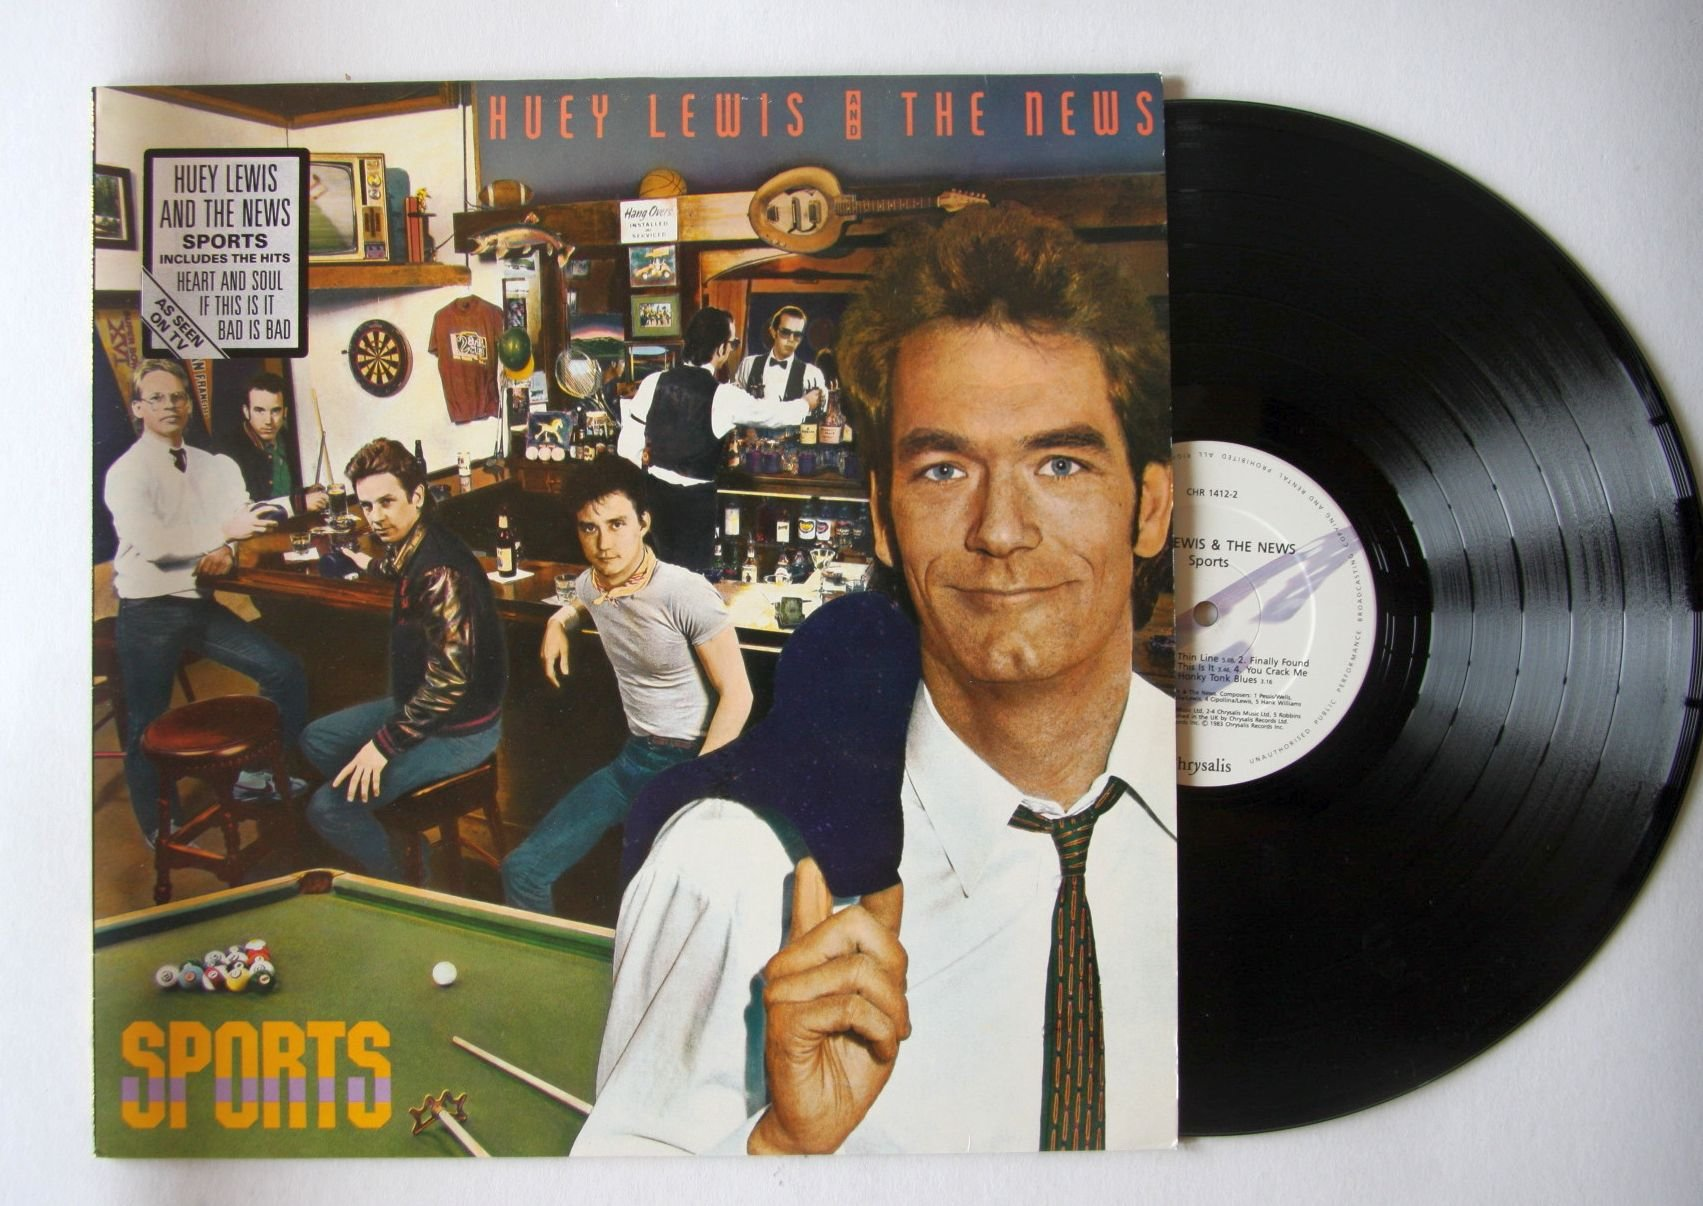 Huey lewis and the news this is it lyrics